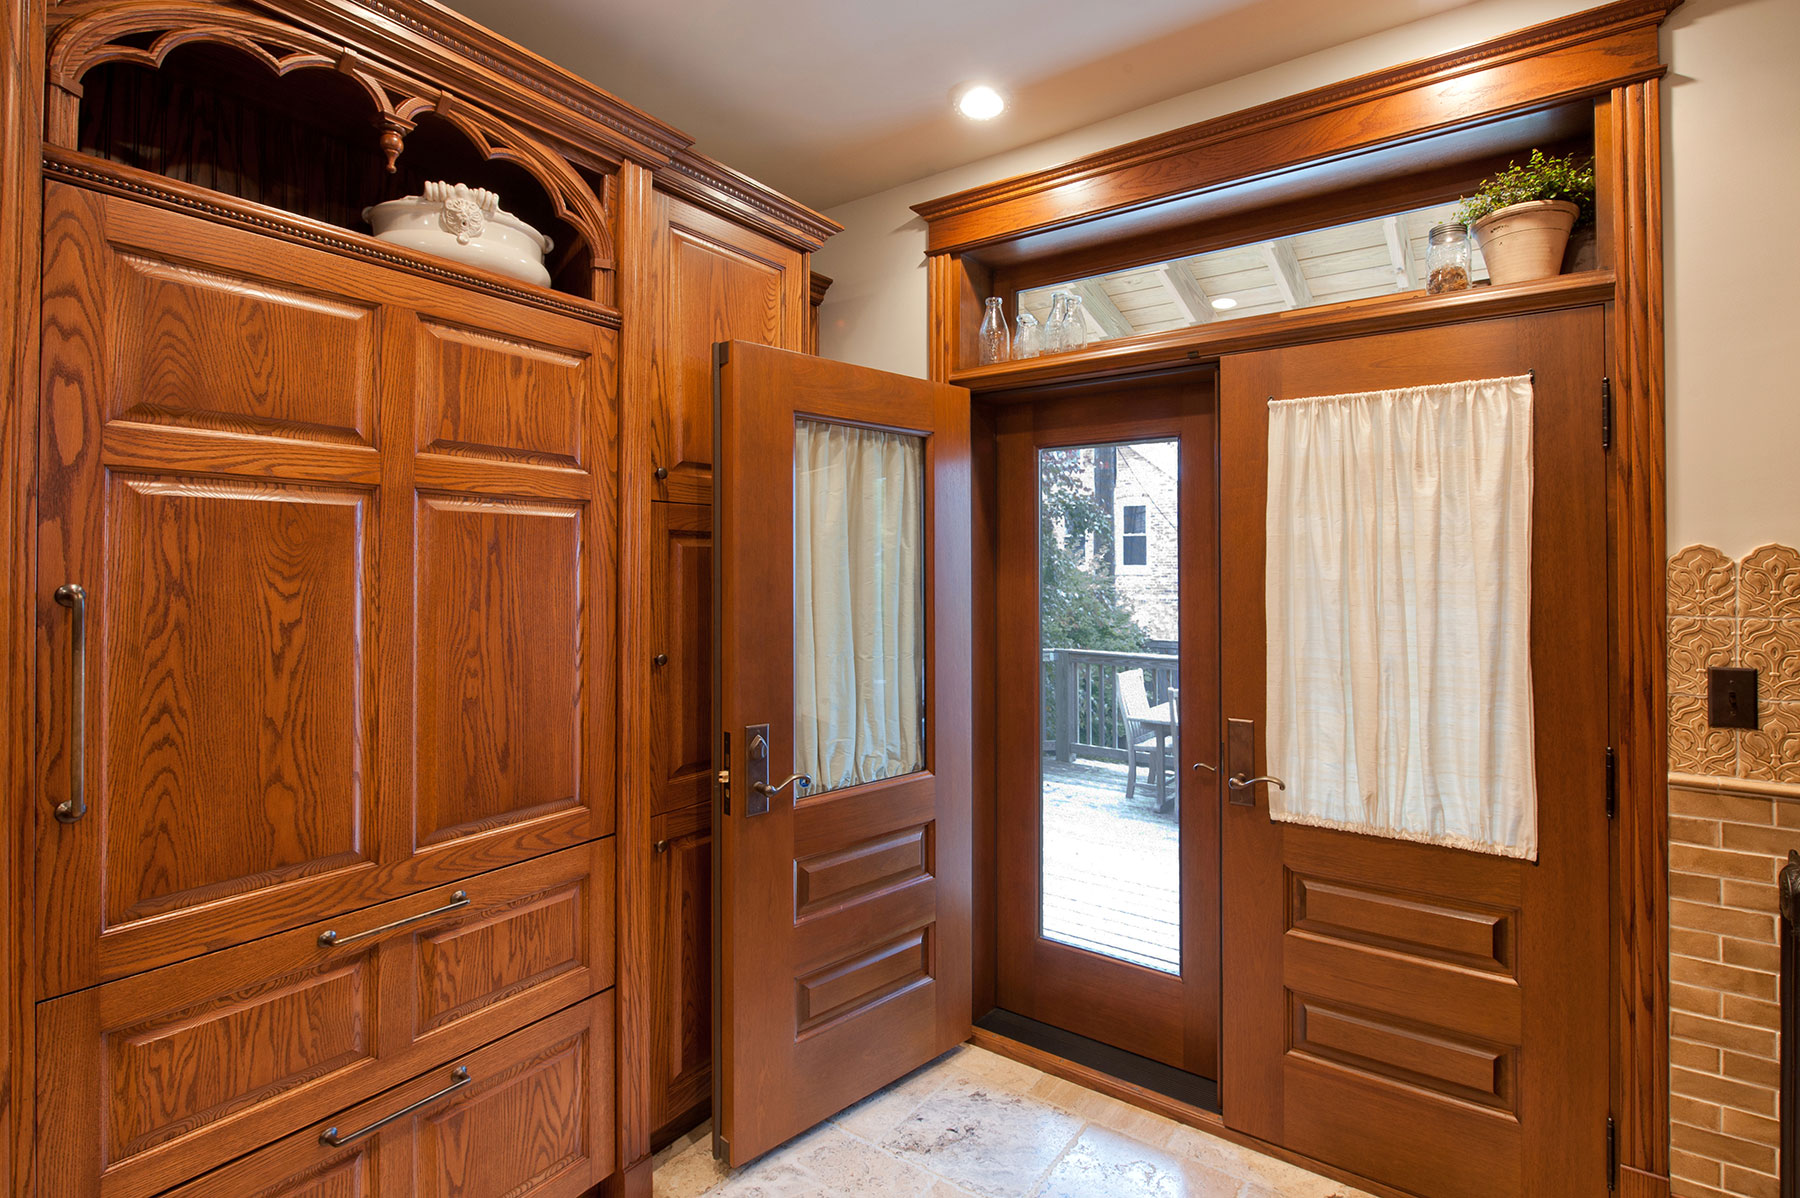 Custom Wood Front Entry Doors | Custom Solid Wood Historical Home Renovation Mahogany Double Door with Transom   - Glenview Doors - Custom Doors in Chicago